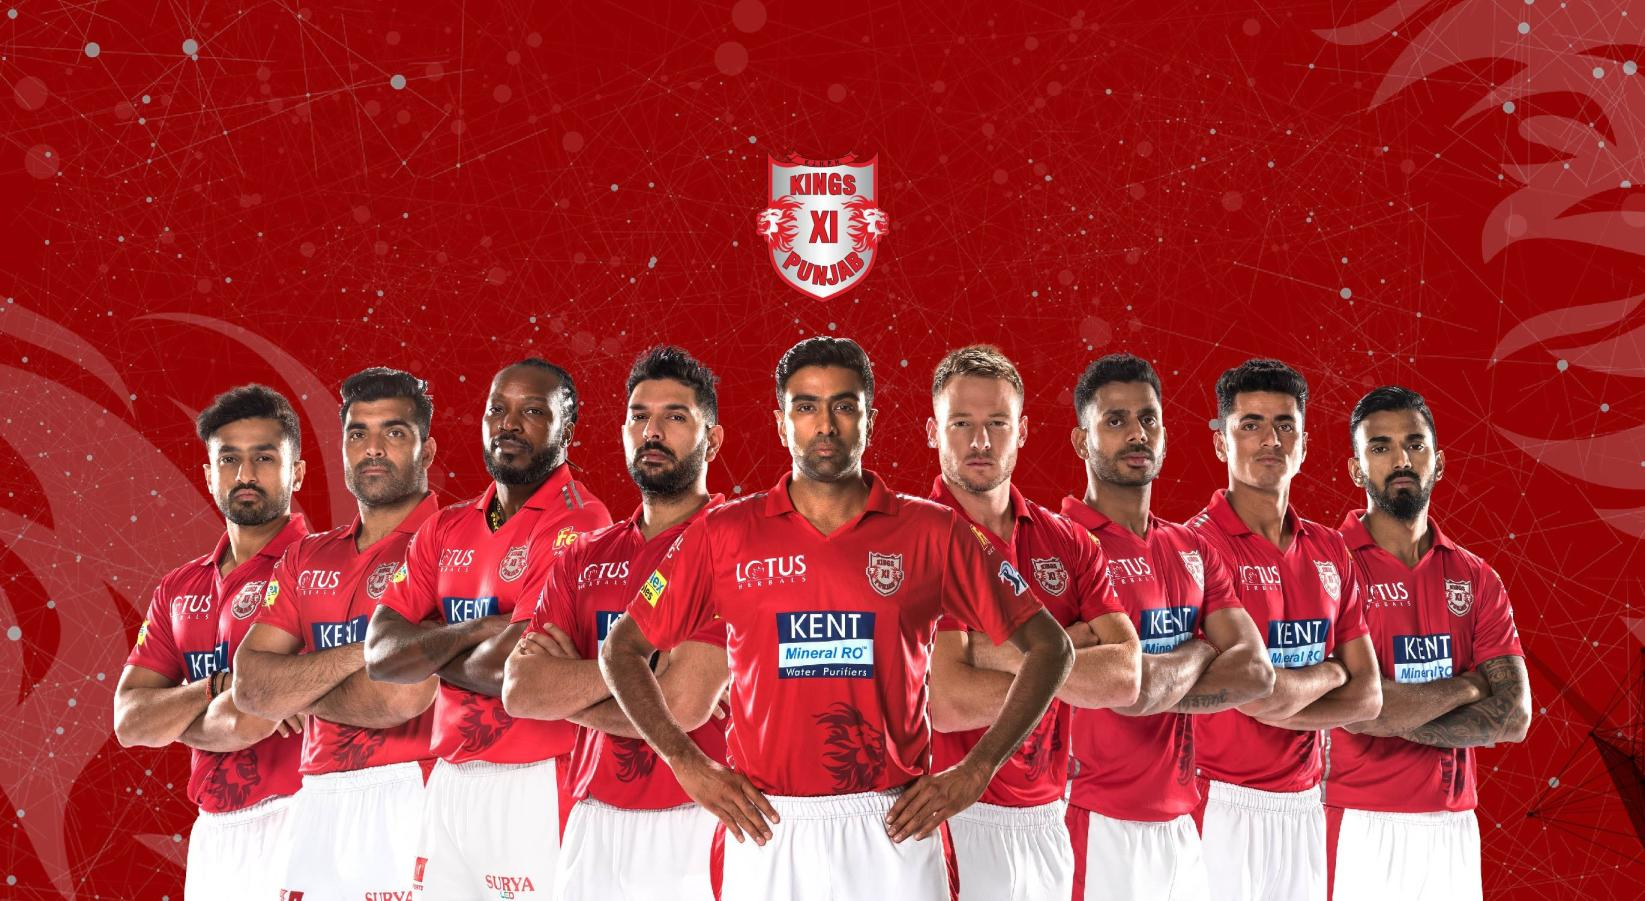 Kings XI Punjab: VIVO IPL 2018